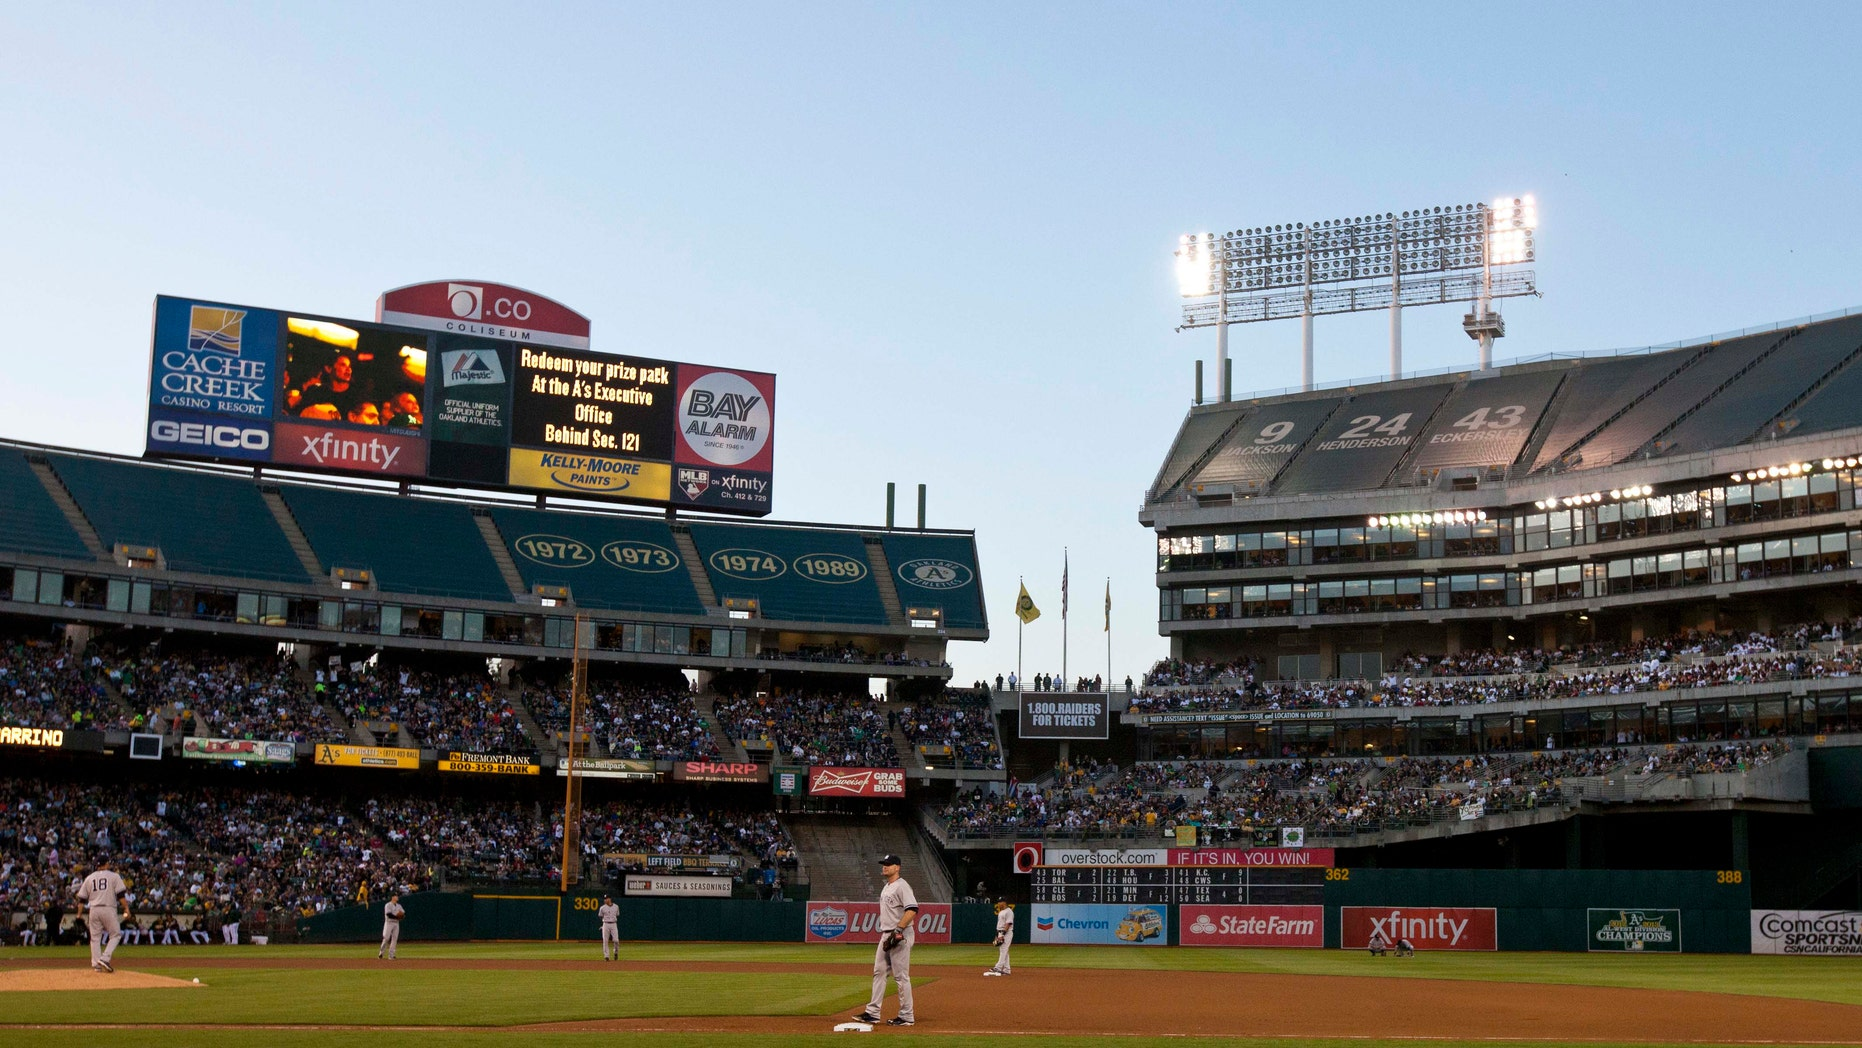 OAKLAND, CA - JUNE 14:  Play is suspended during the fourth inning between the Oakland Athletics and the New York Yankees because of faulty stadium lights in left field at O.co Coliseum on June 14, 2014 in Oakland, California. (Photo by Jason O. Watson/Getty Images)